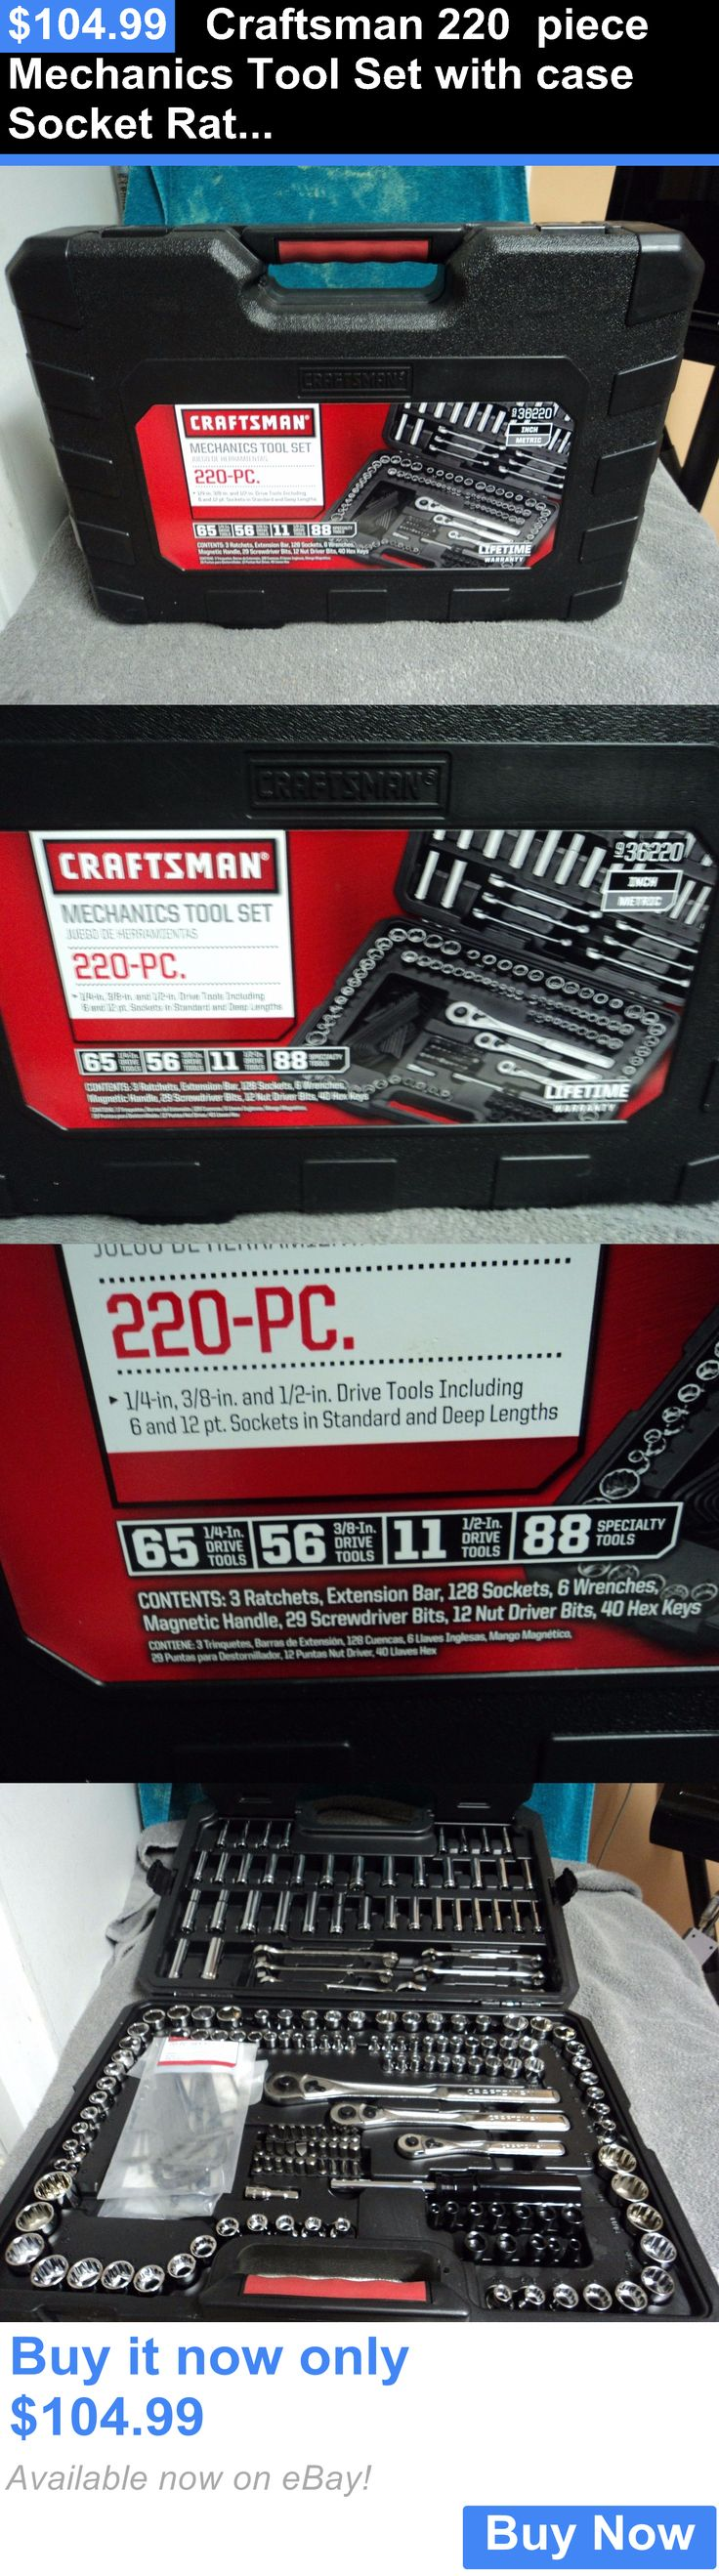 tools: Craftsman 220 Piece Mechanics Tool Set With Case Socket Ratchet Wrench Sae/Mm BUY IT NOW ONLY: $104.99